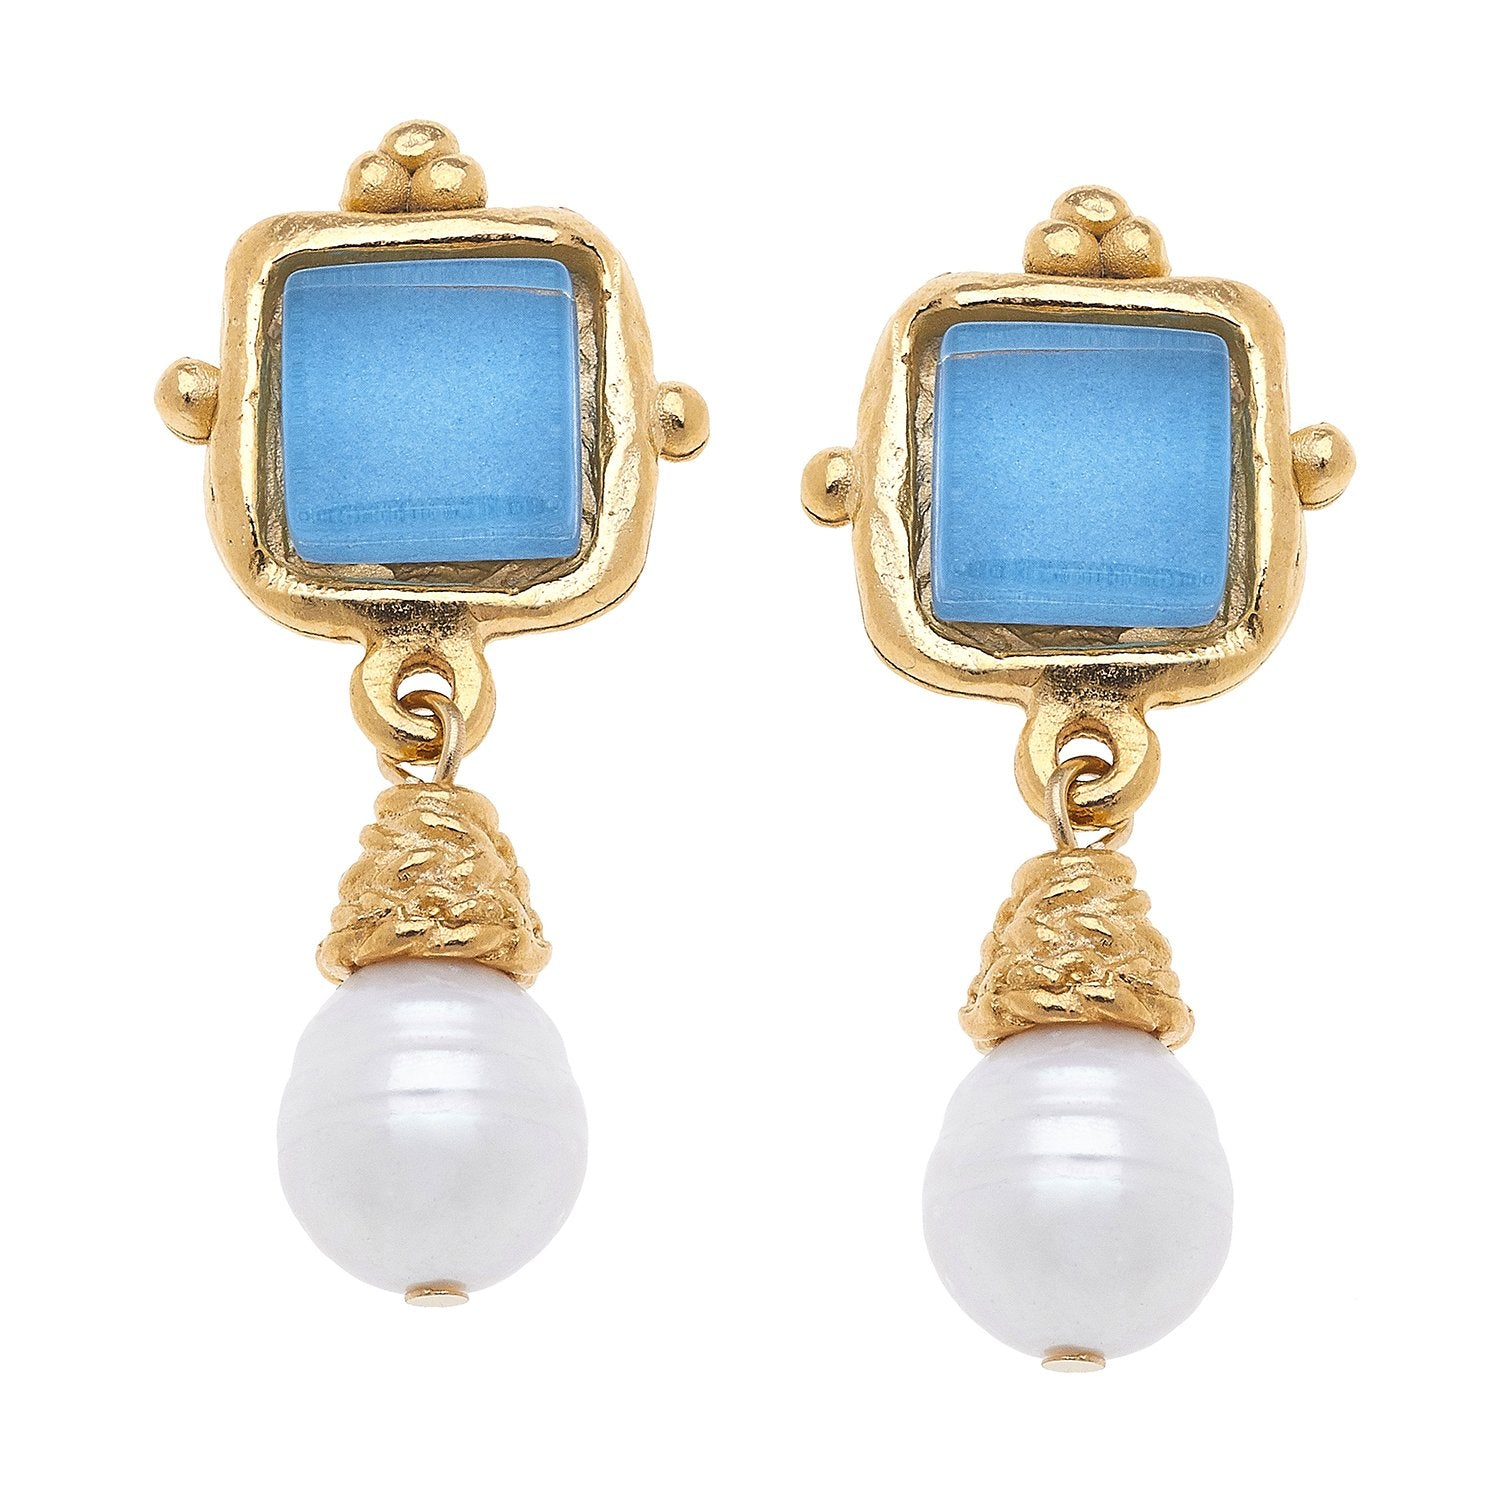 Susan Shaw Charlotte Mini Drop Earrings in Parisian Blue